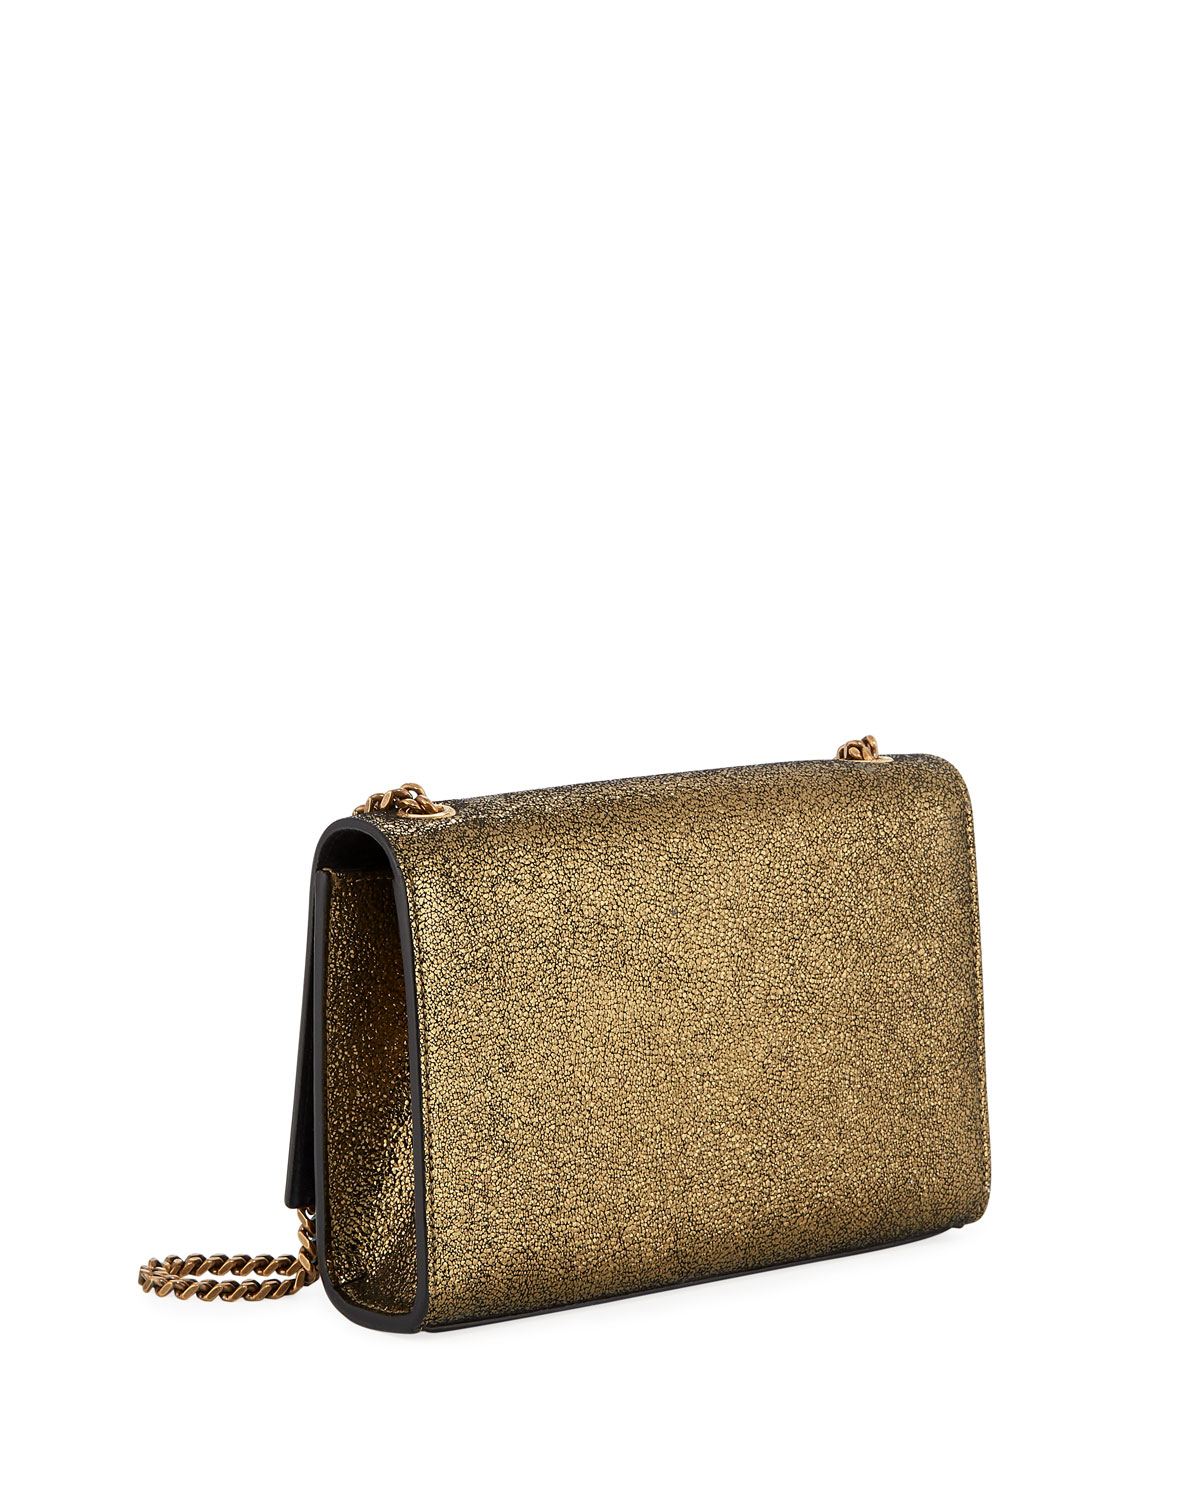 Kate Monogram Ysl Small Metallic Leather Crossbody Bag by Saint Laurent